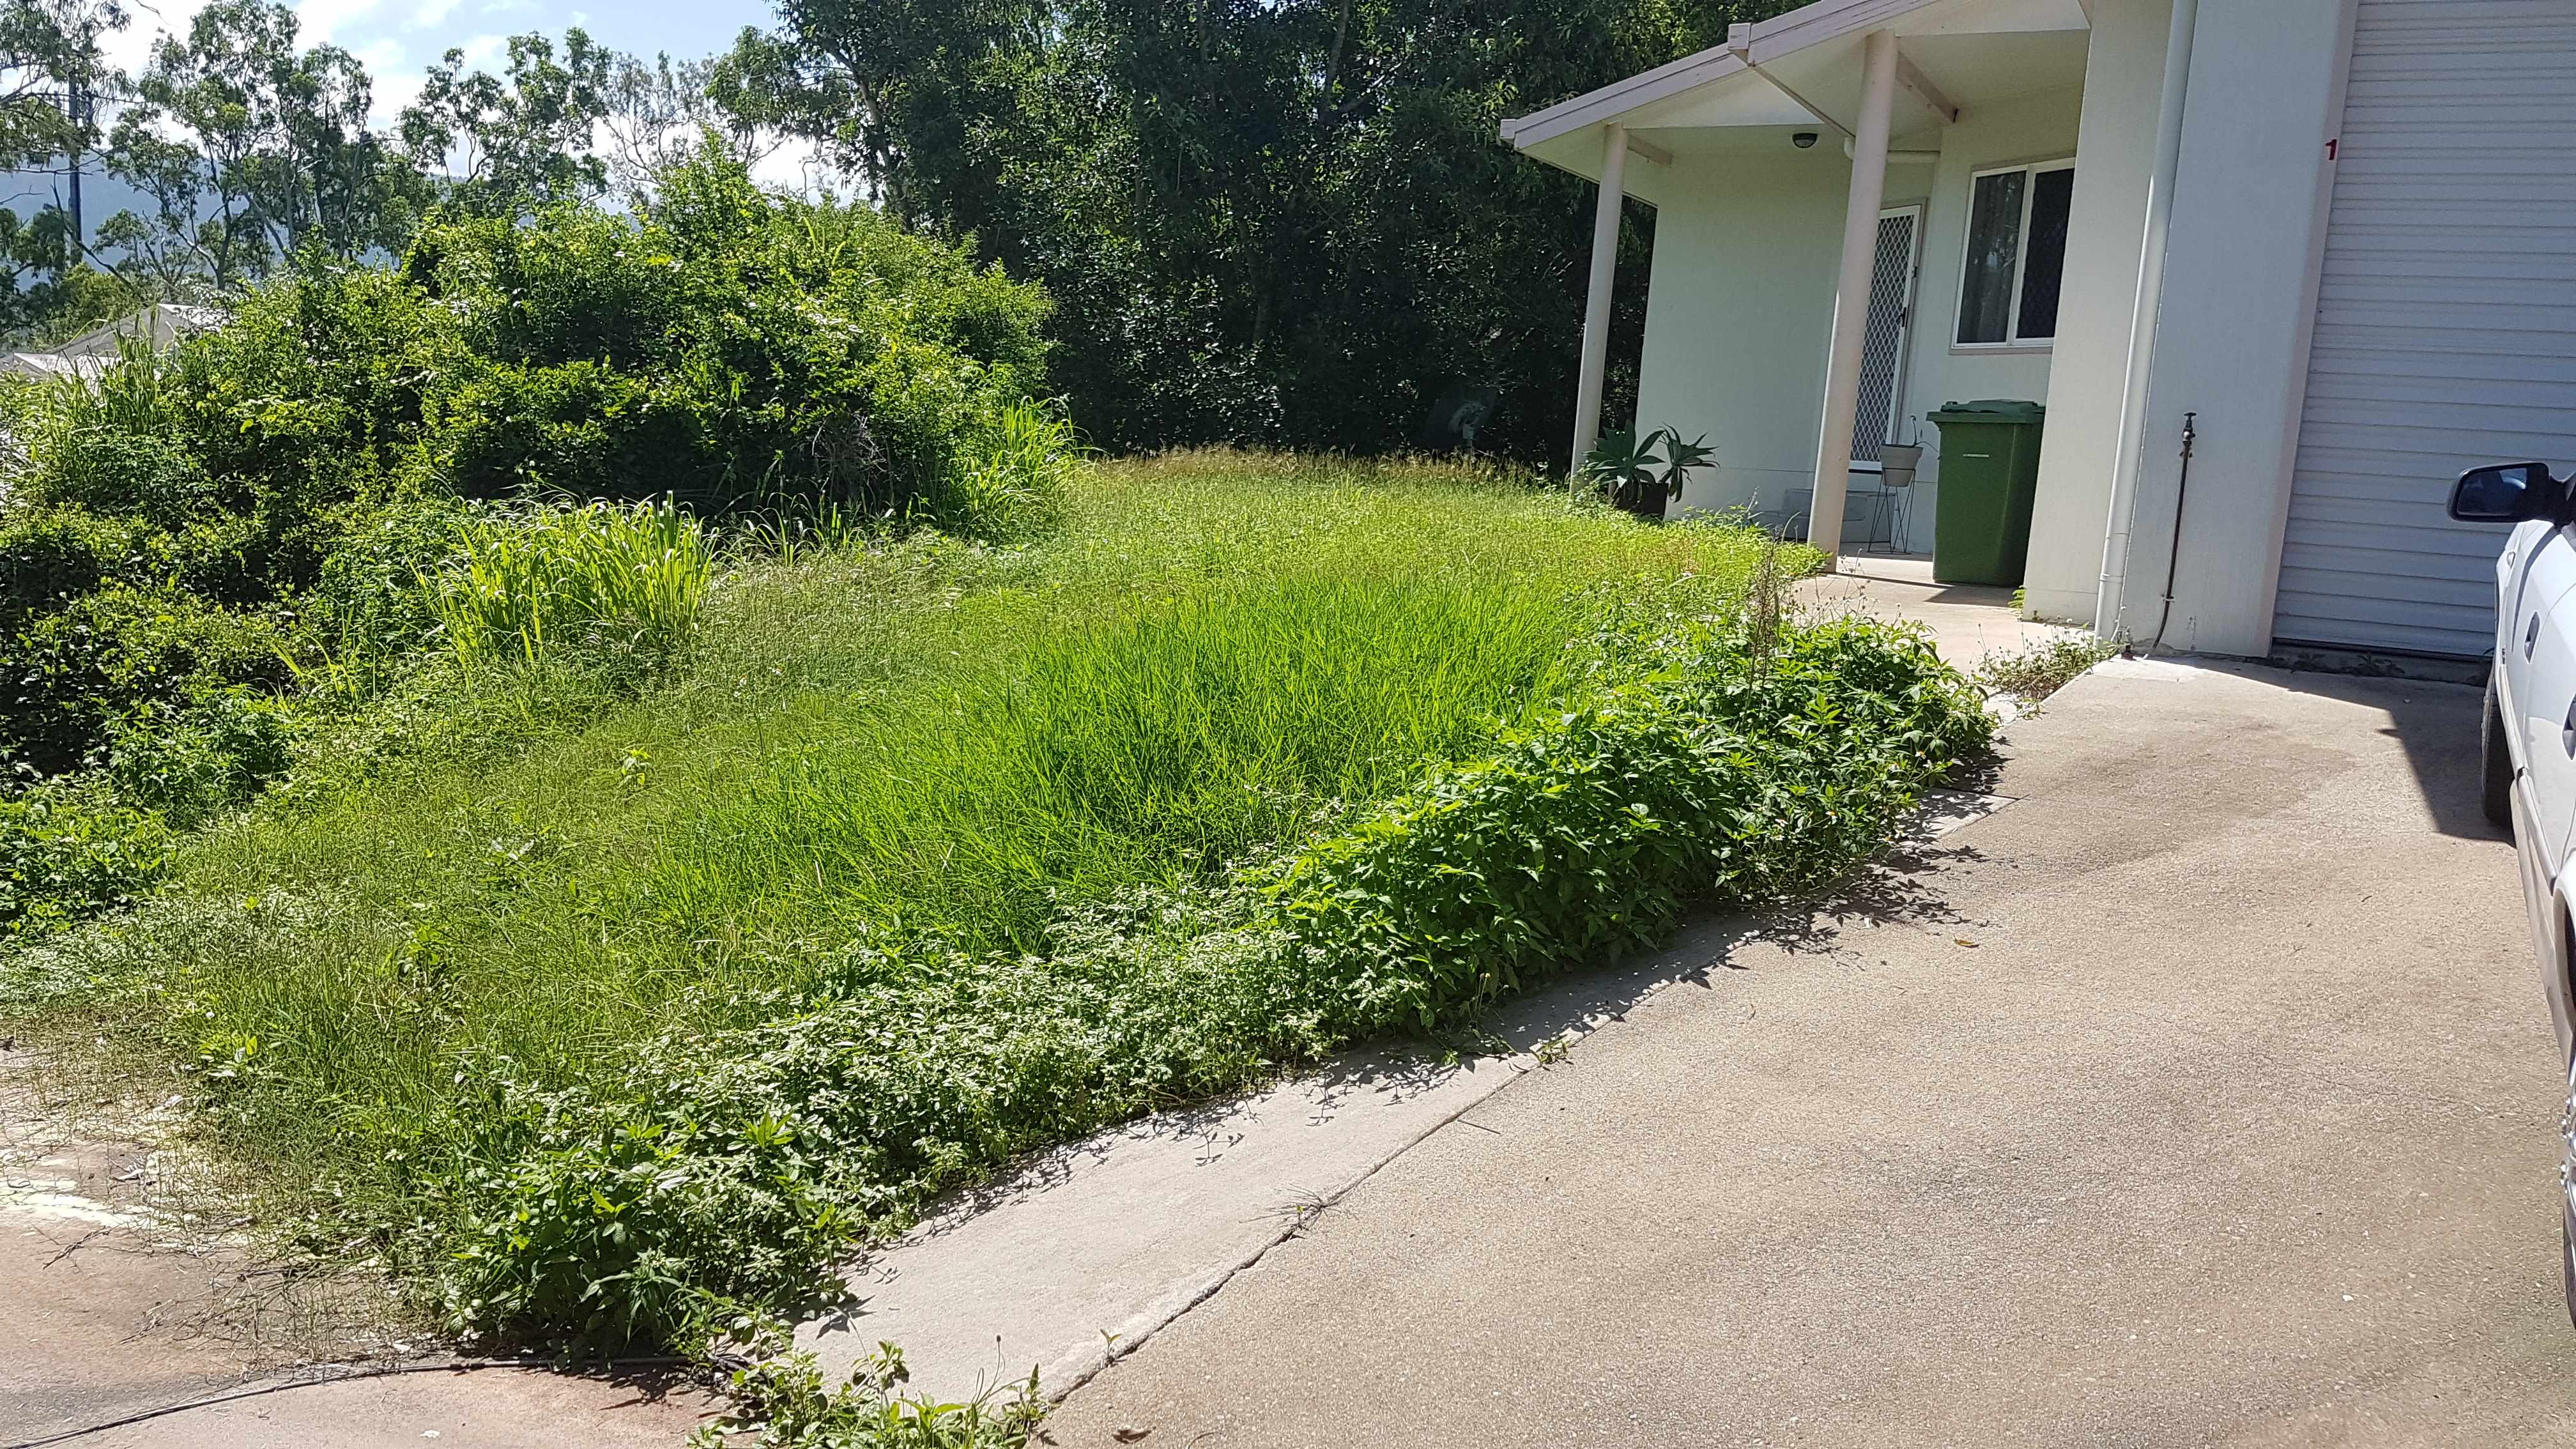 Stay Green Lawn Care - Gardening (17)